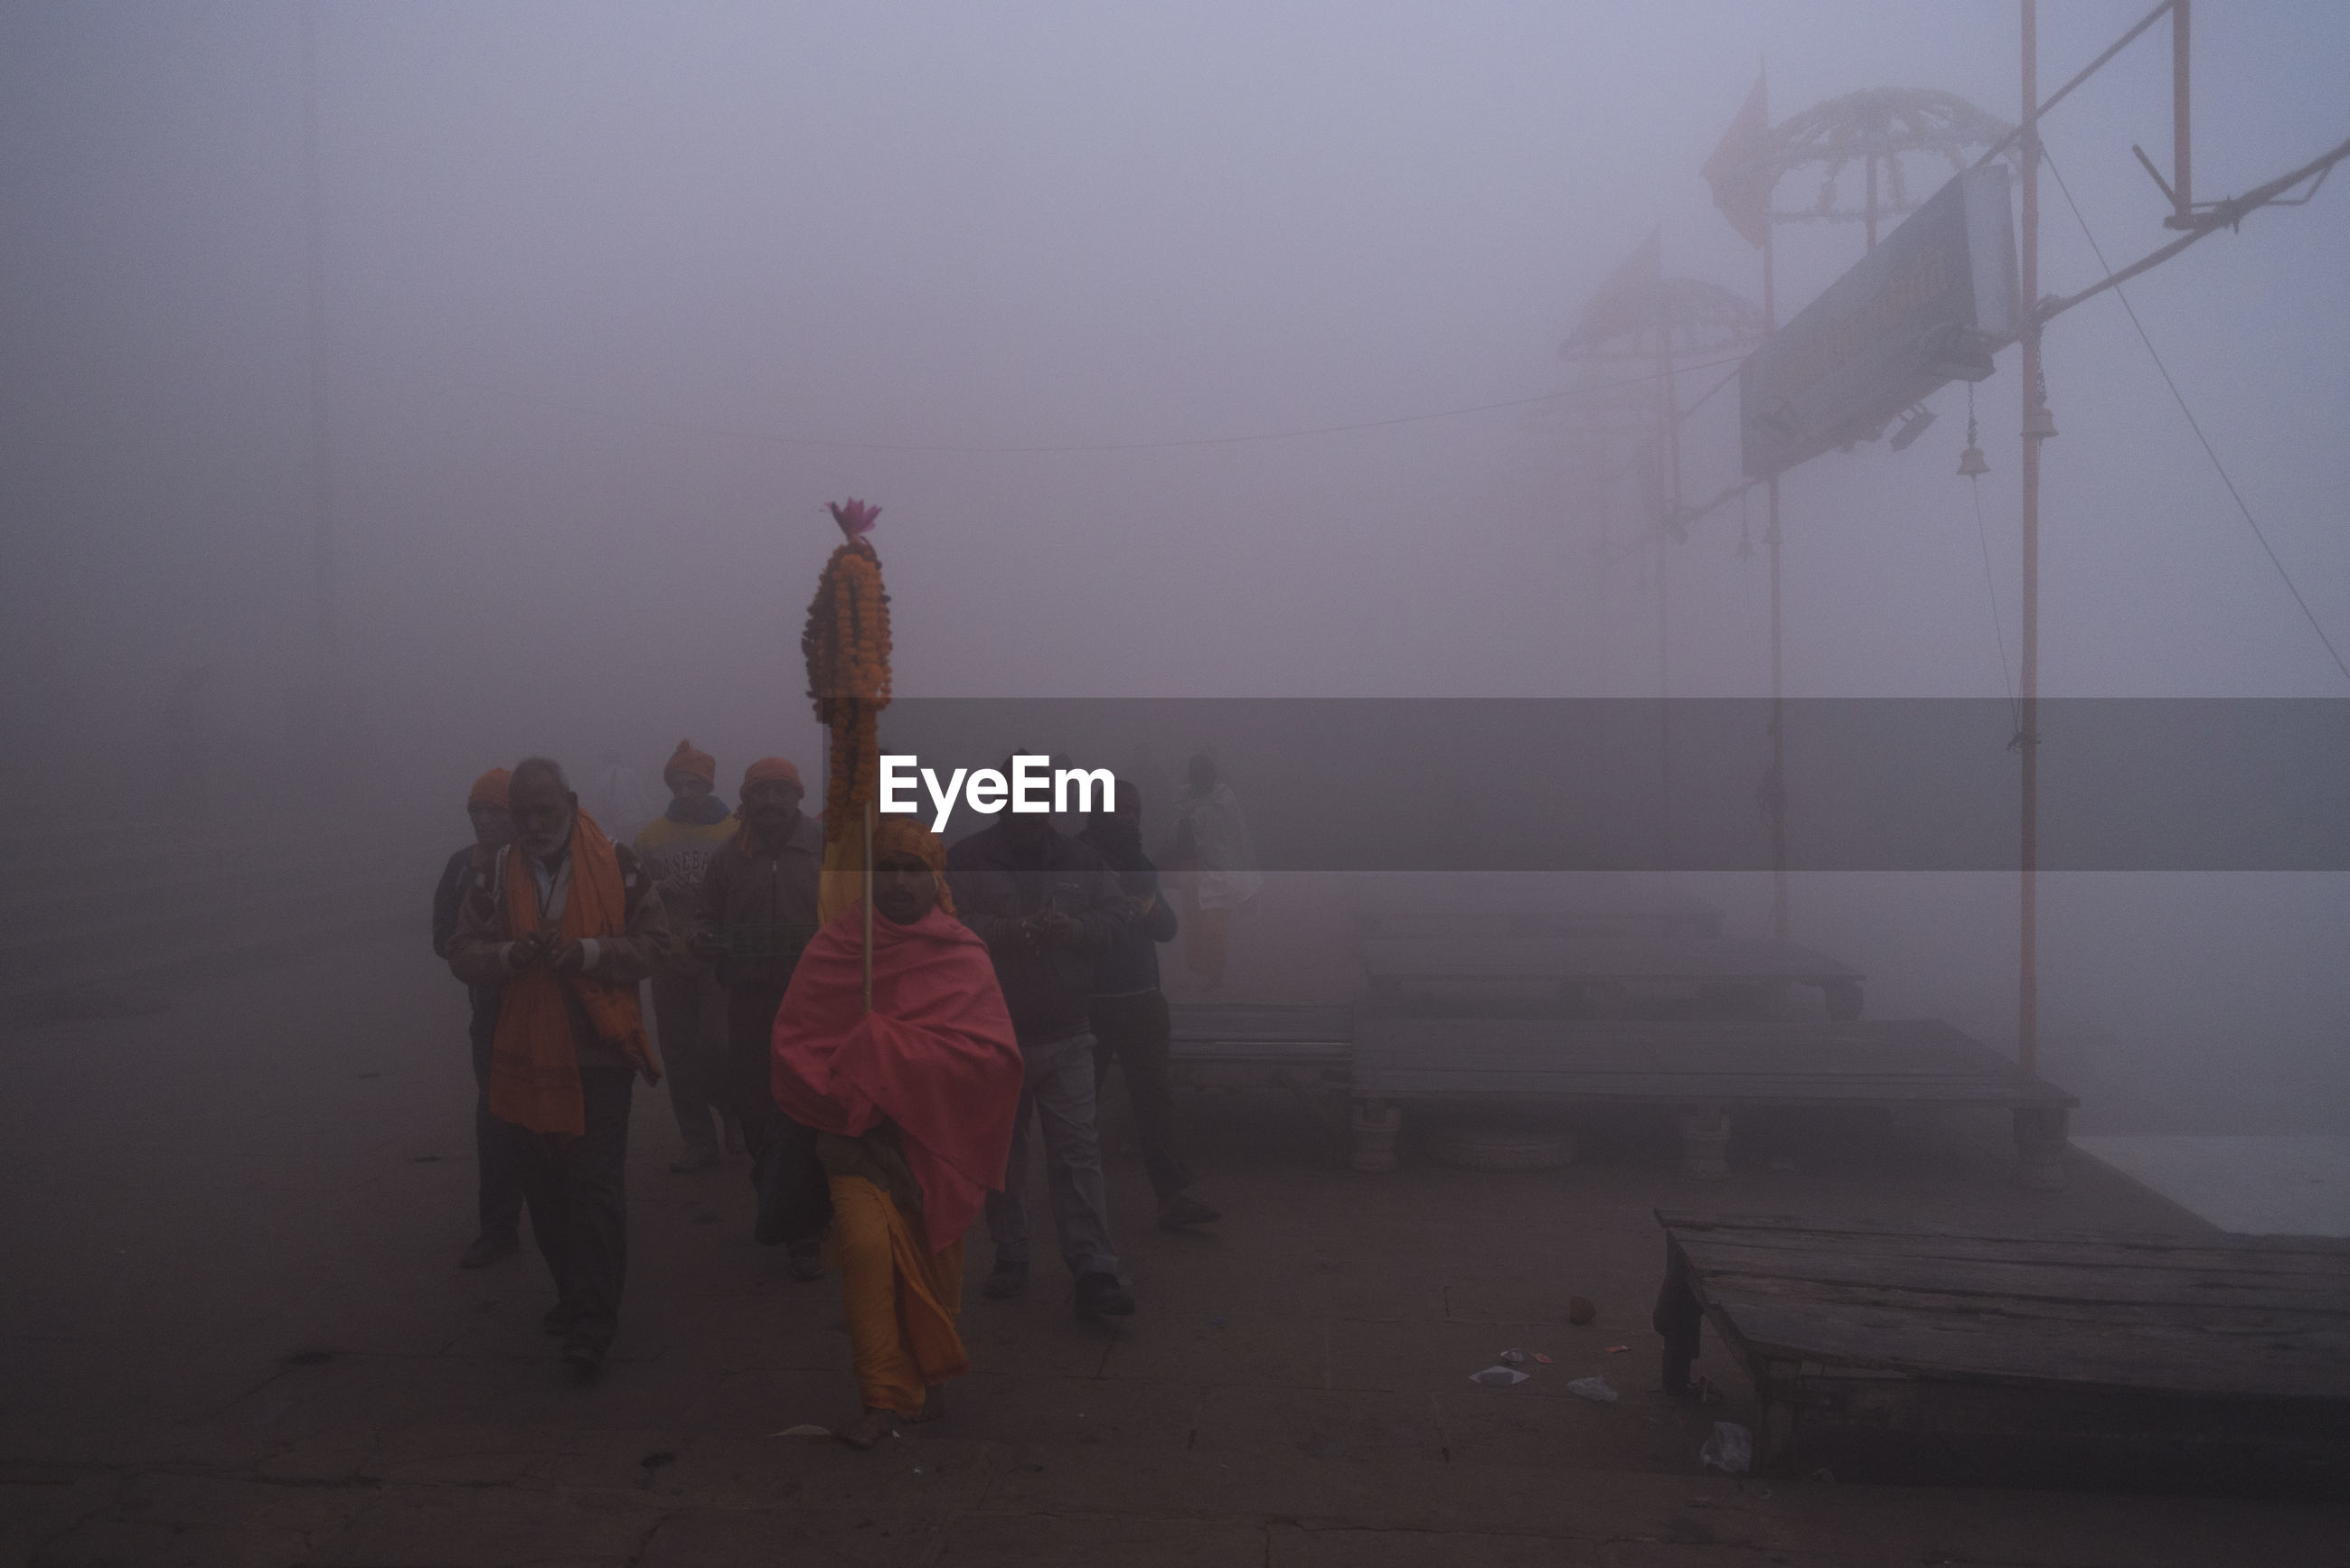 PEOPLE ON TEMPLE AGAINST SKY DURING FOGGY WEATHER